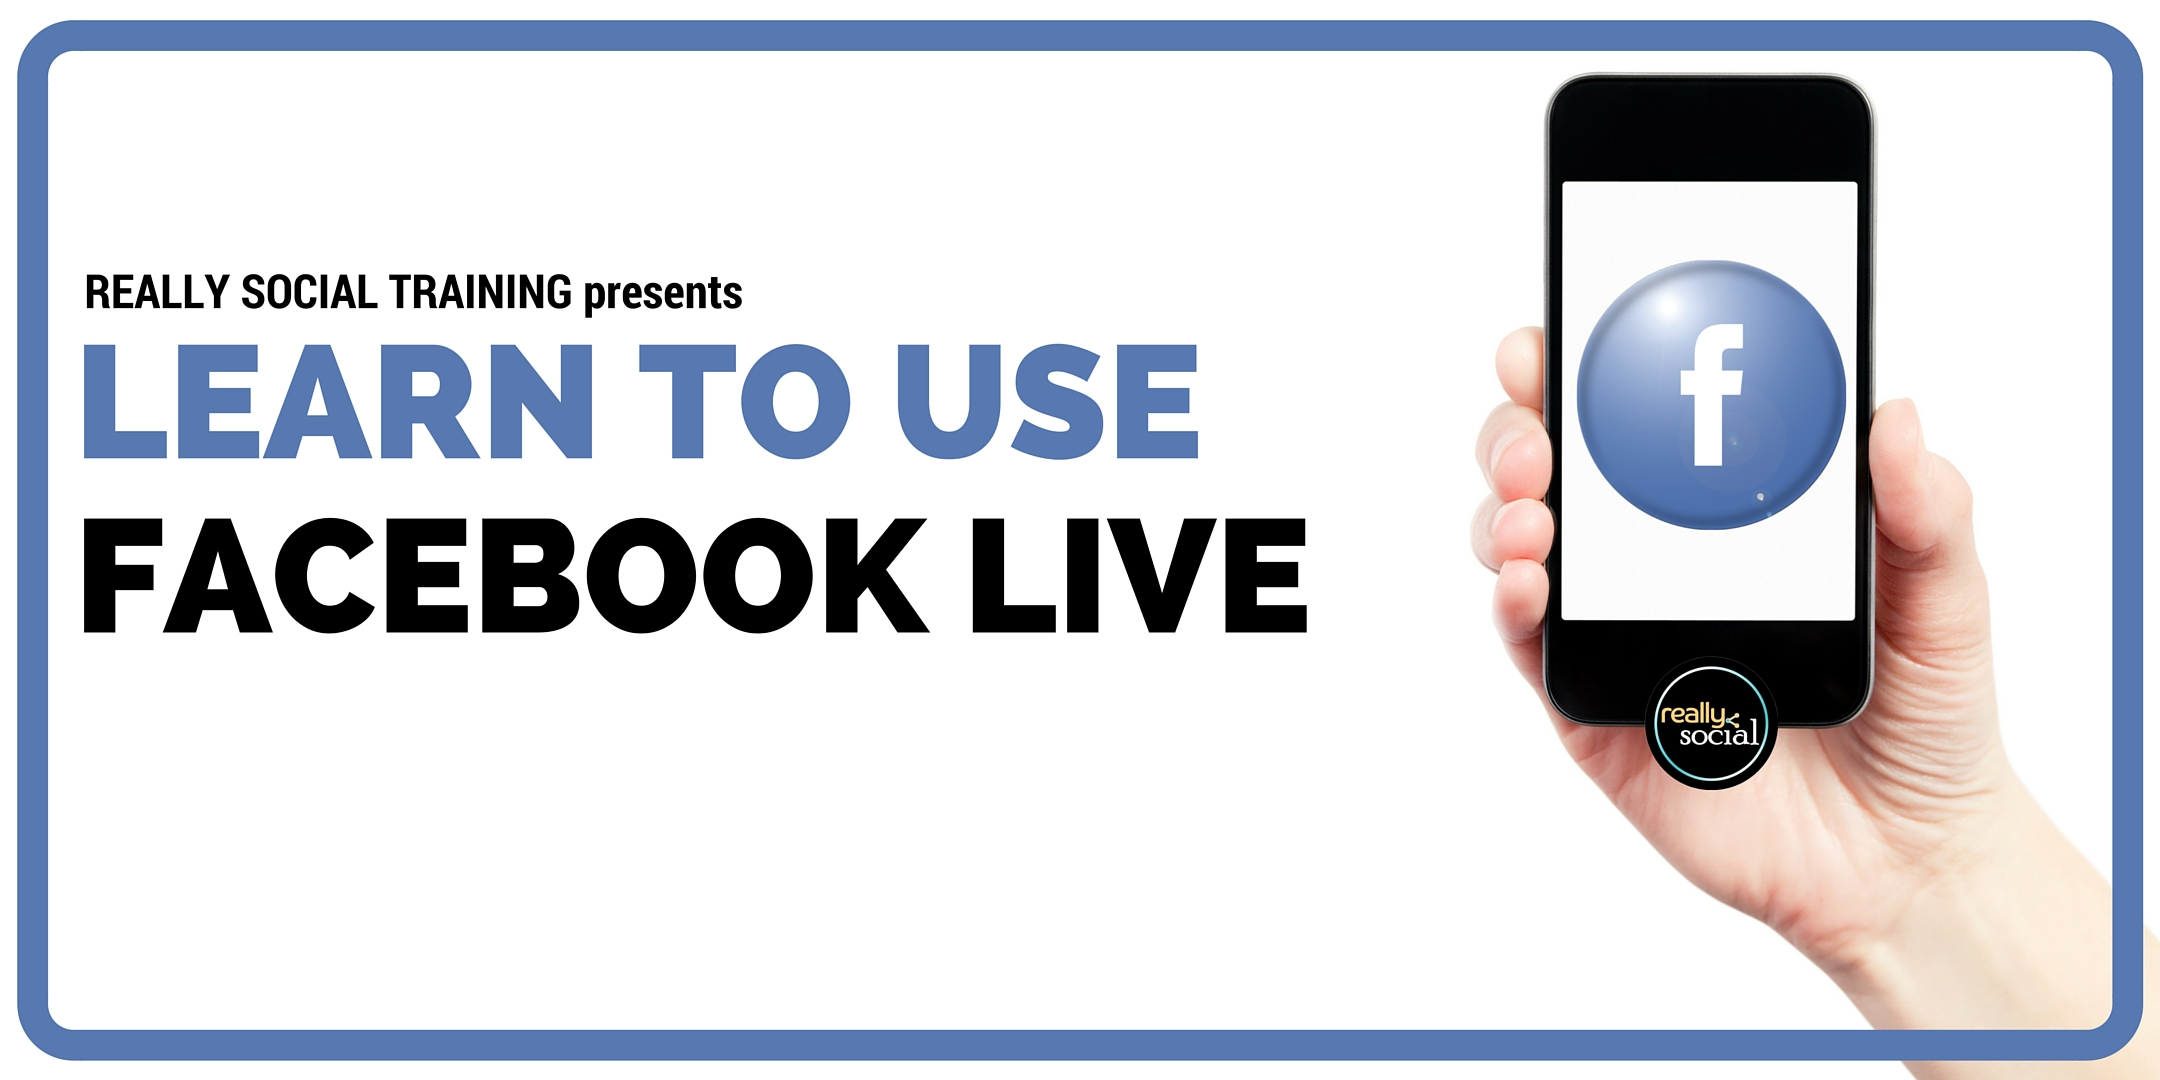 Learn to Use Facebook Live | Really Social Training (image)